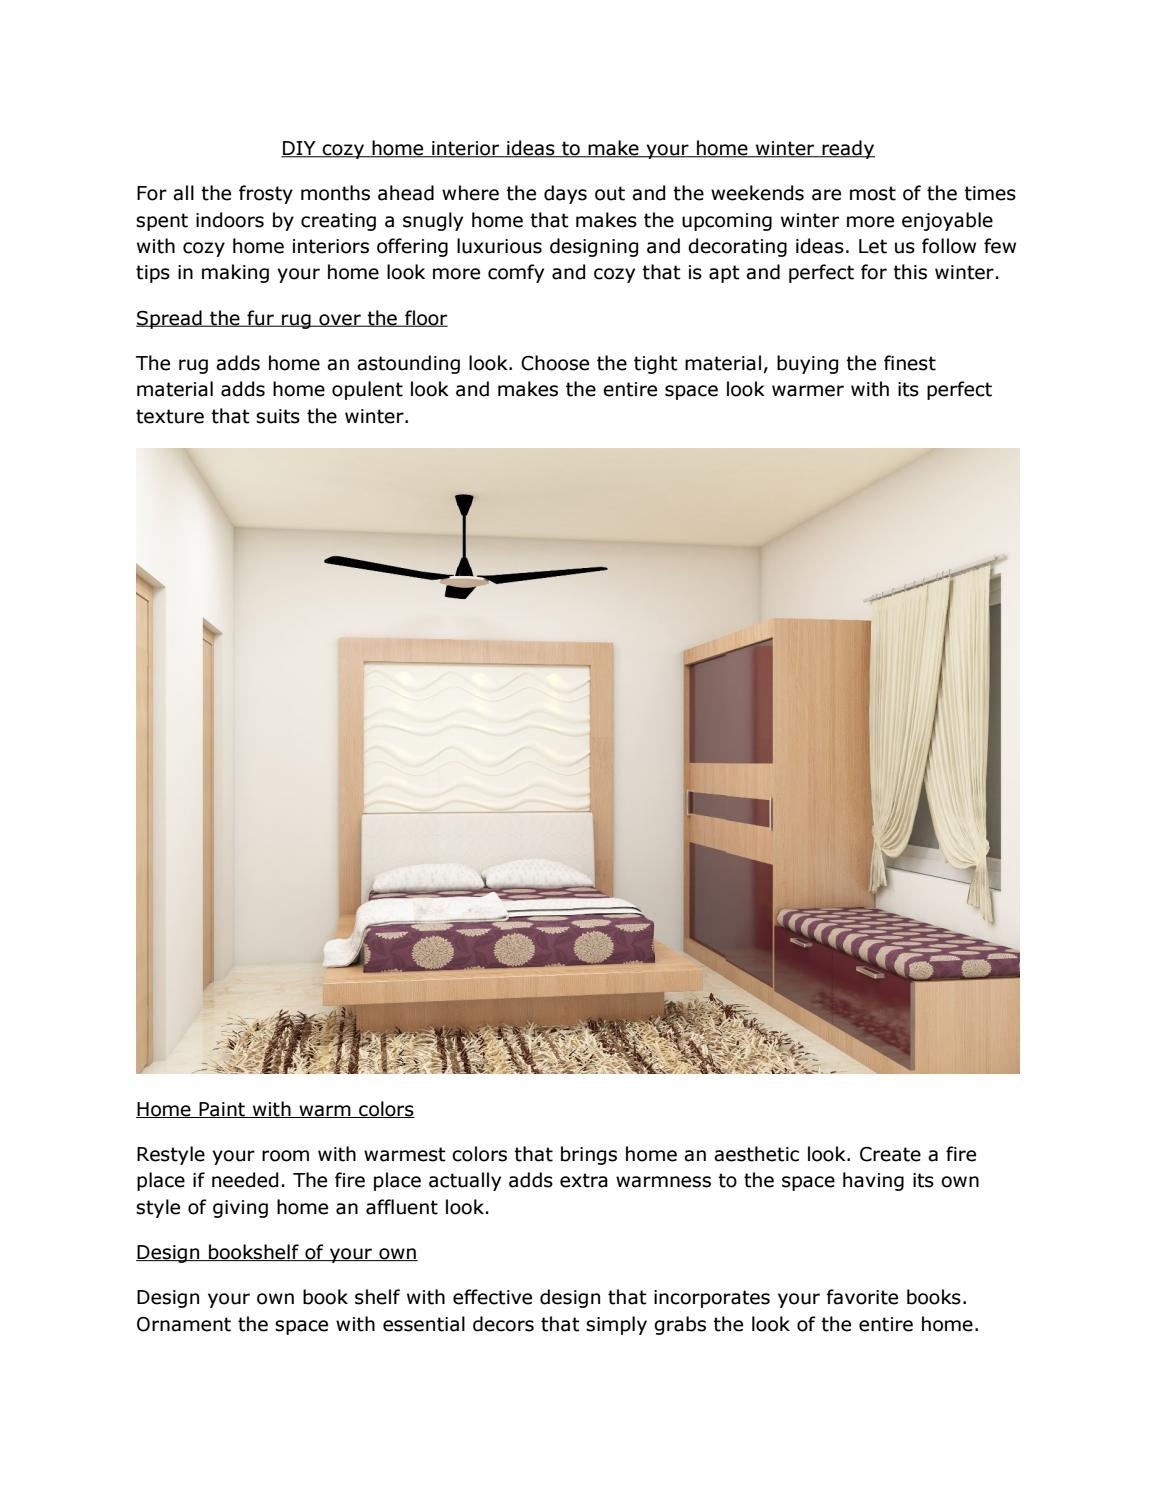 Diy Cozy Home Interior Ideas To Make Your Home Winter Ready By Rajeshwork Issuu